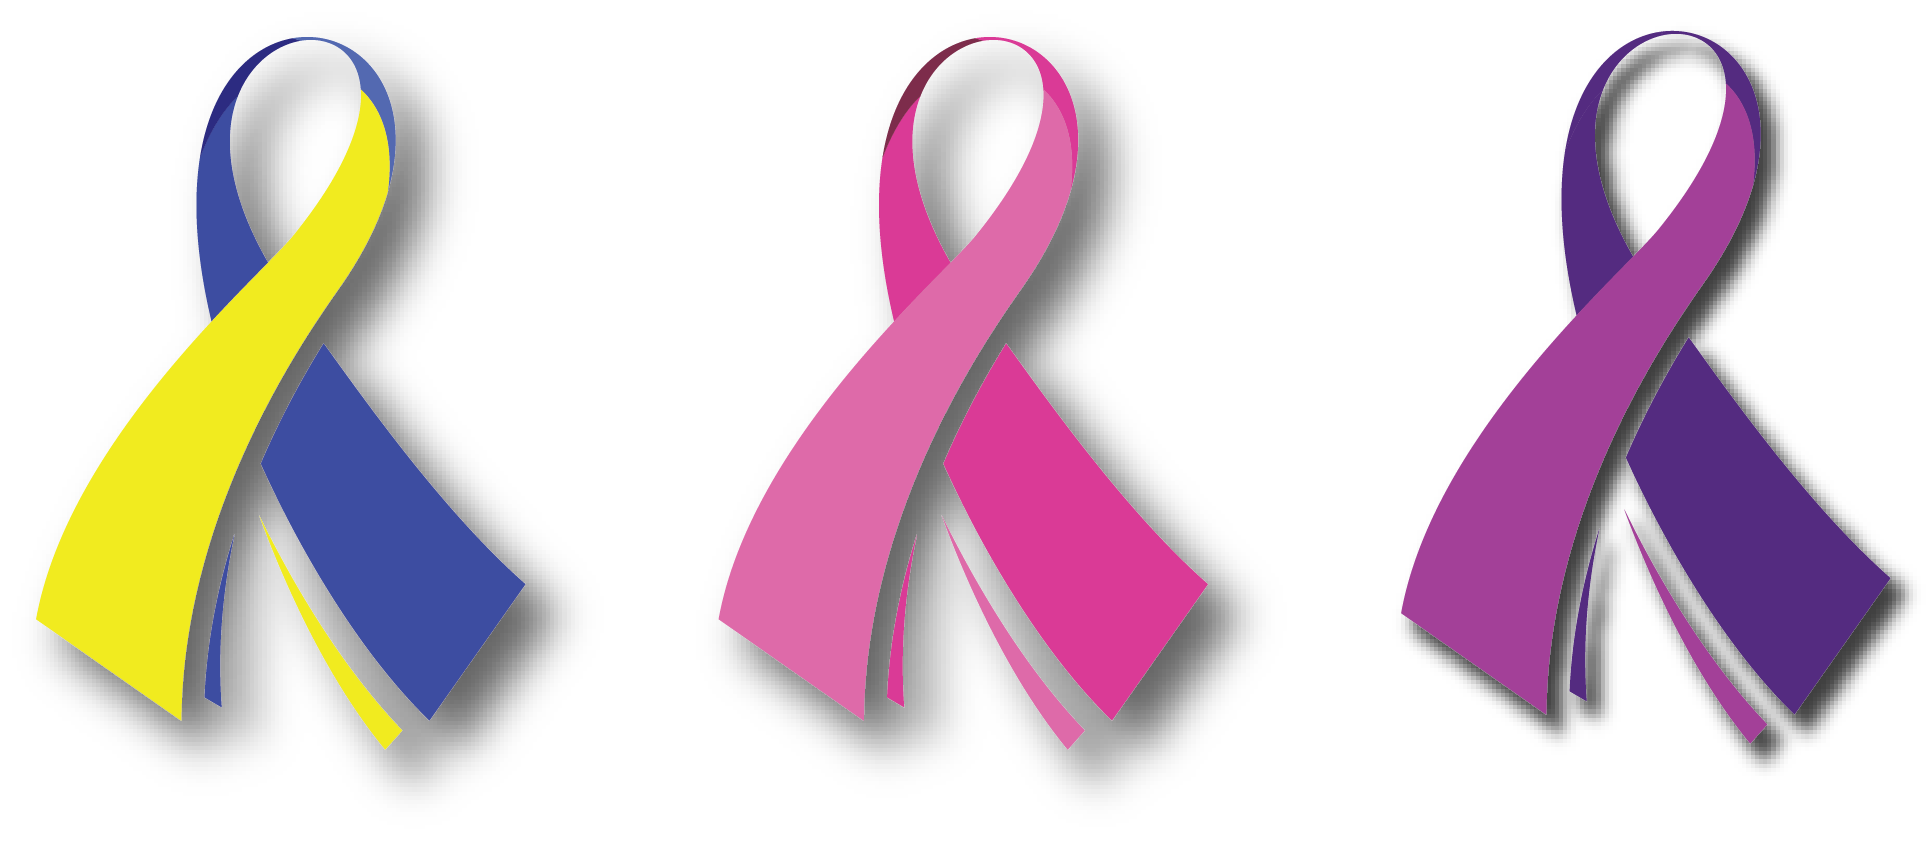 Breast Cancer Ribbon Png - ClipArt Best